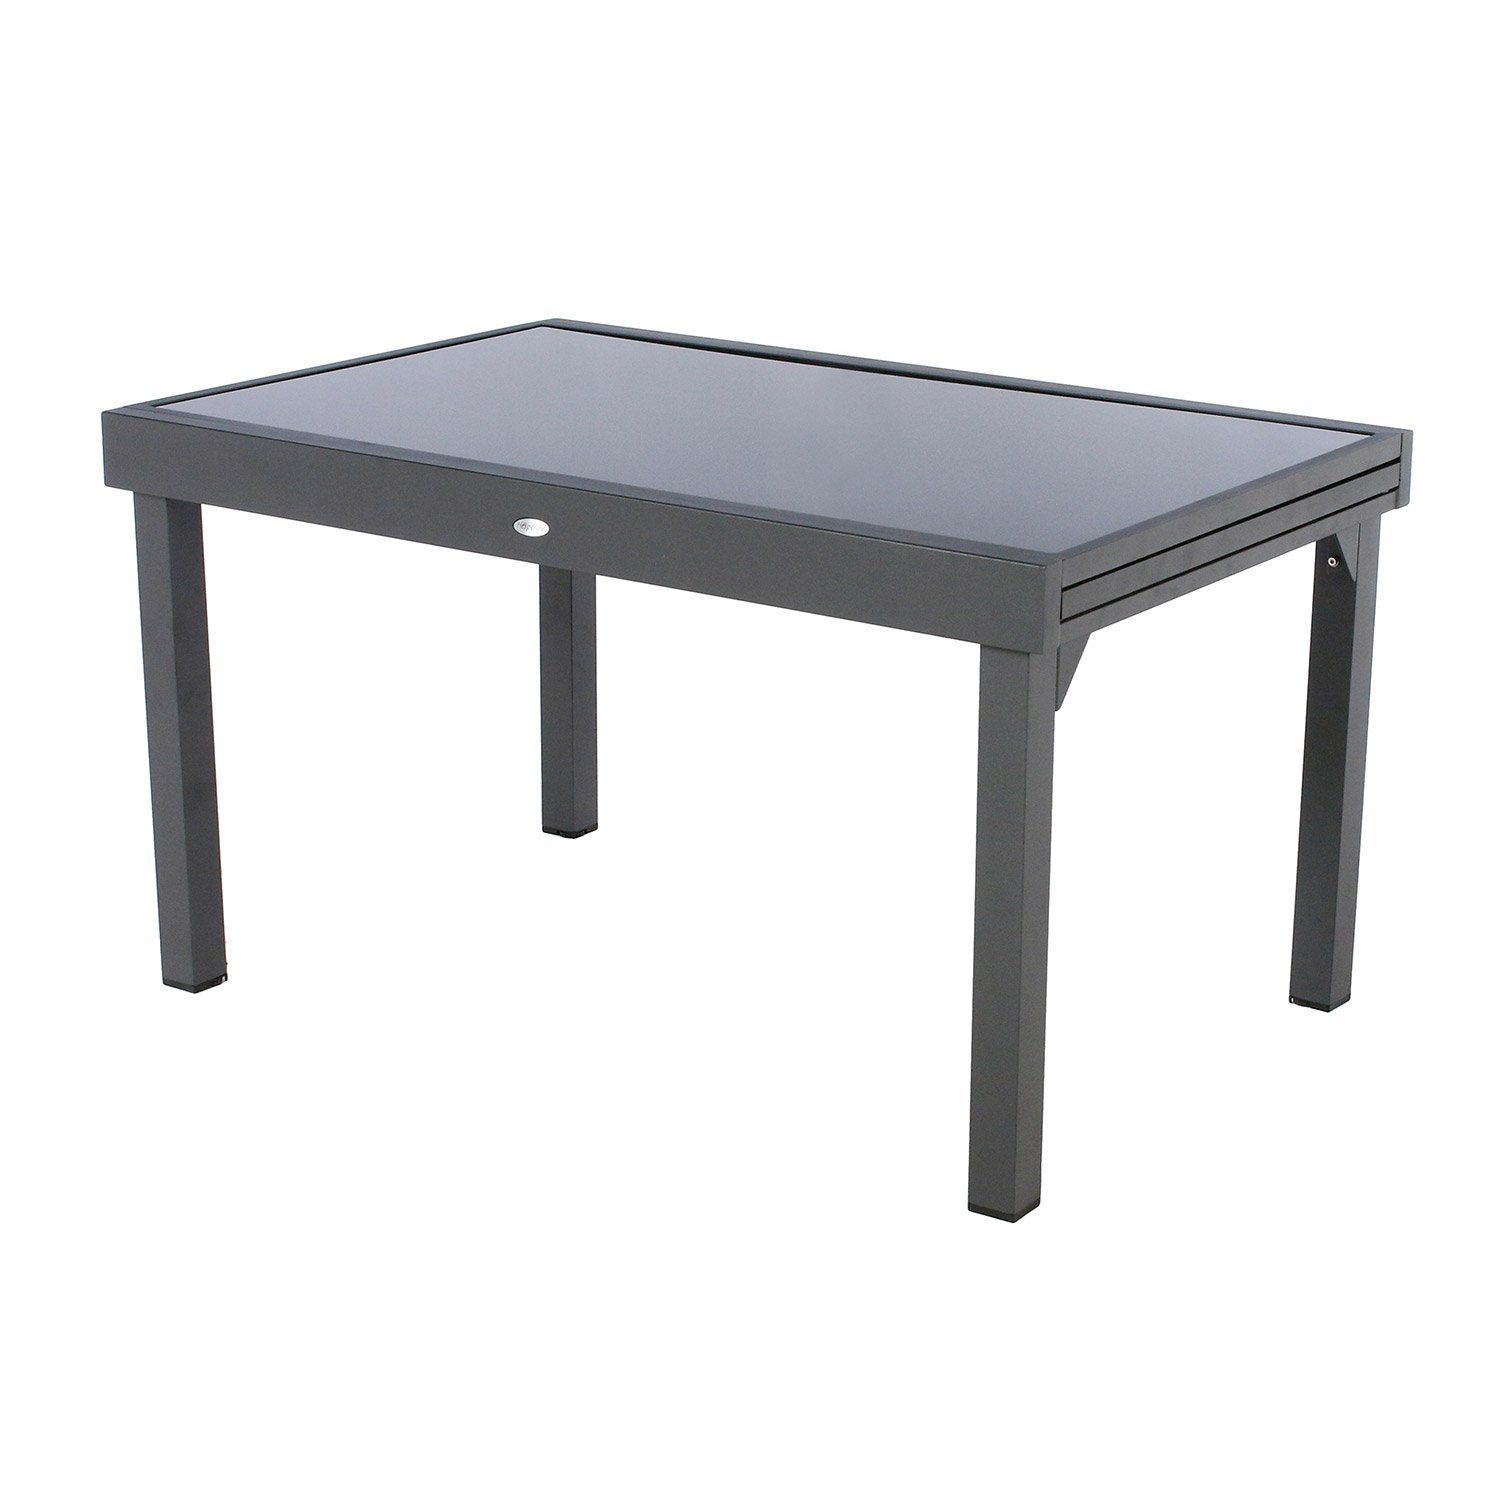 Table de jardin hesperide piazza rectangulaire gris 12 for Table extensible leroy merlin